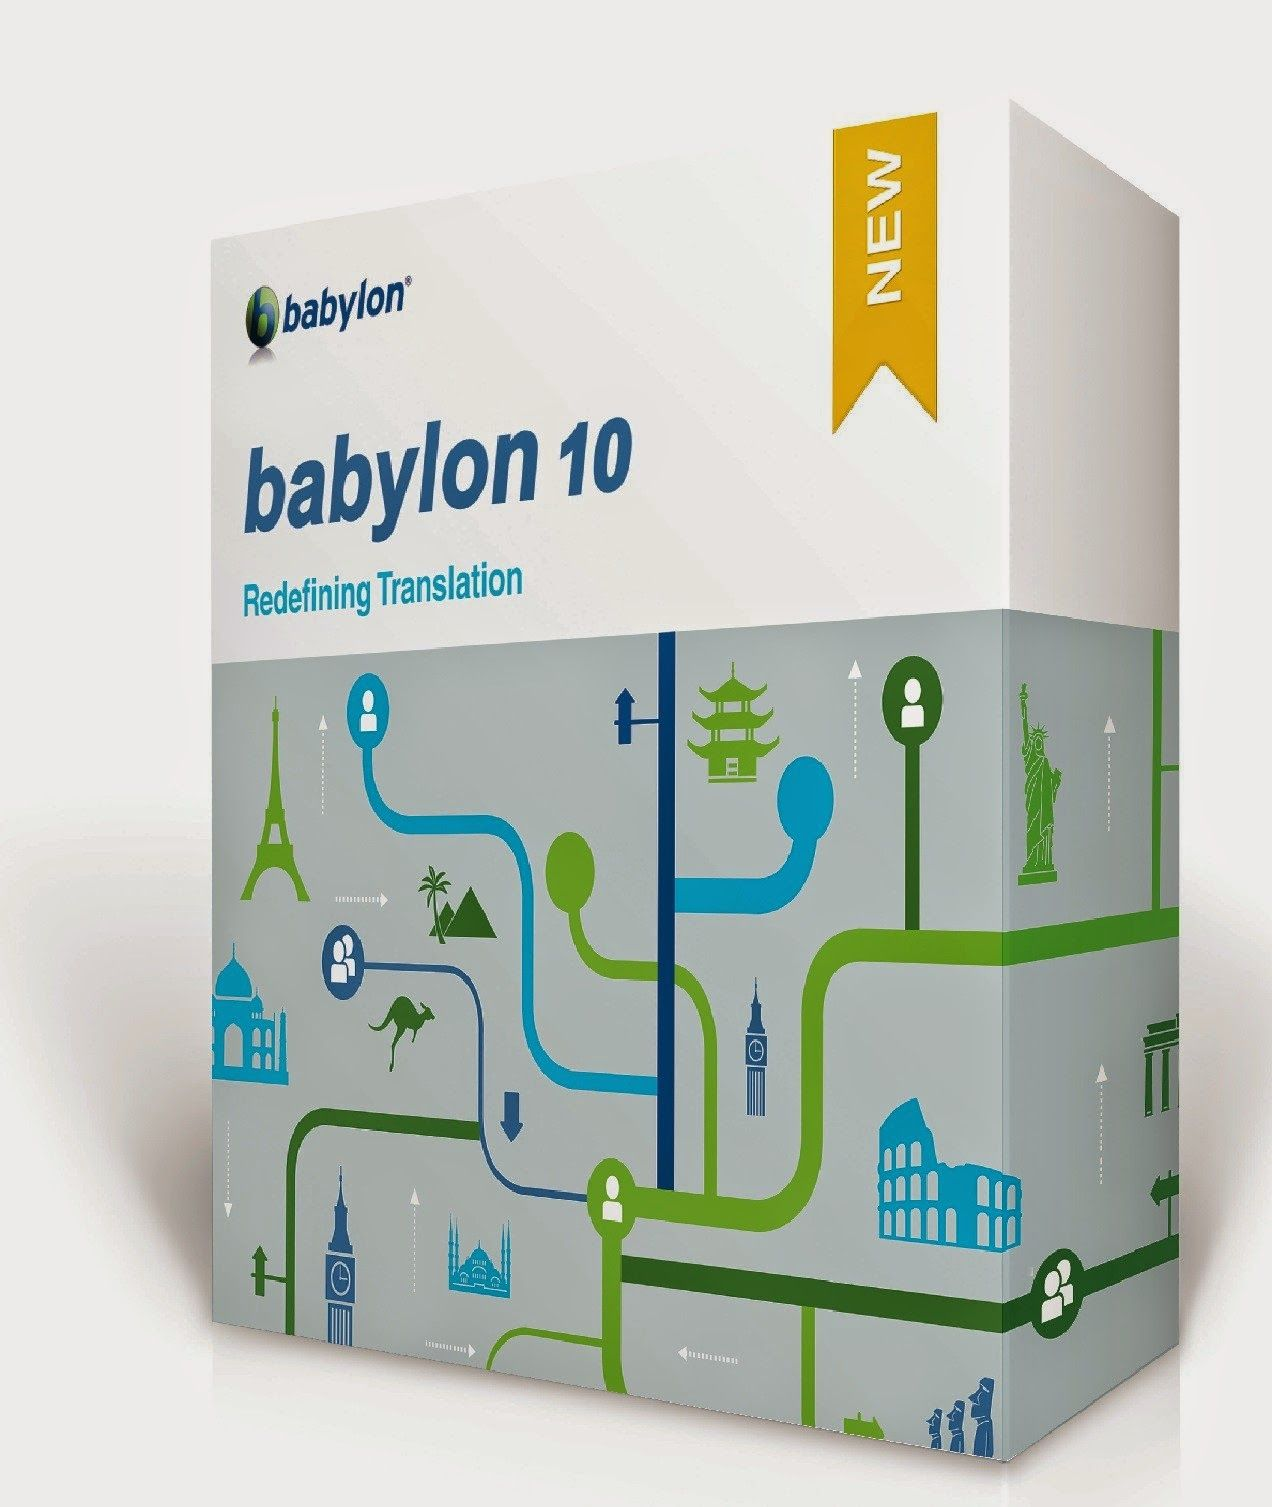 Babylon 10 3 0 12 With Serial Key Voice Pack Babylon Learn Html And Css Grammar Correction